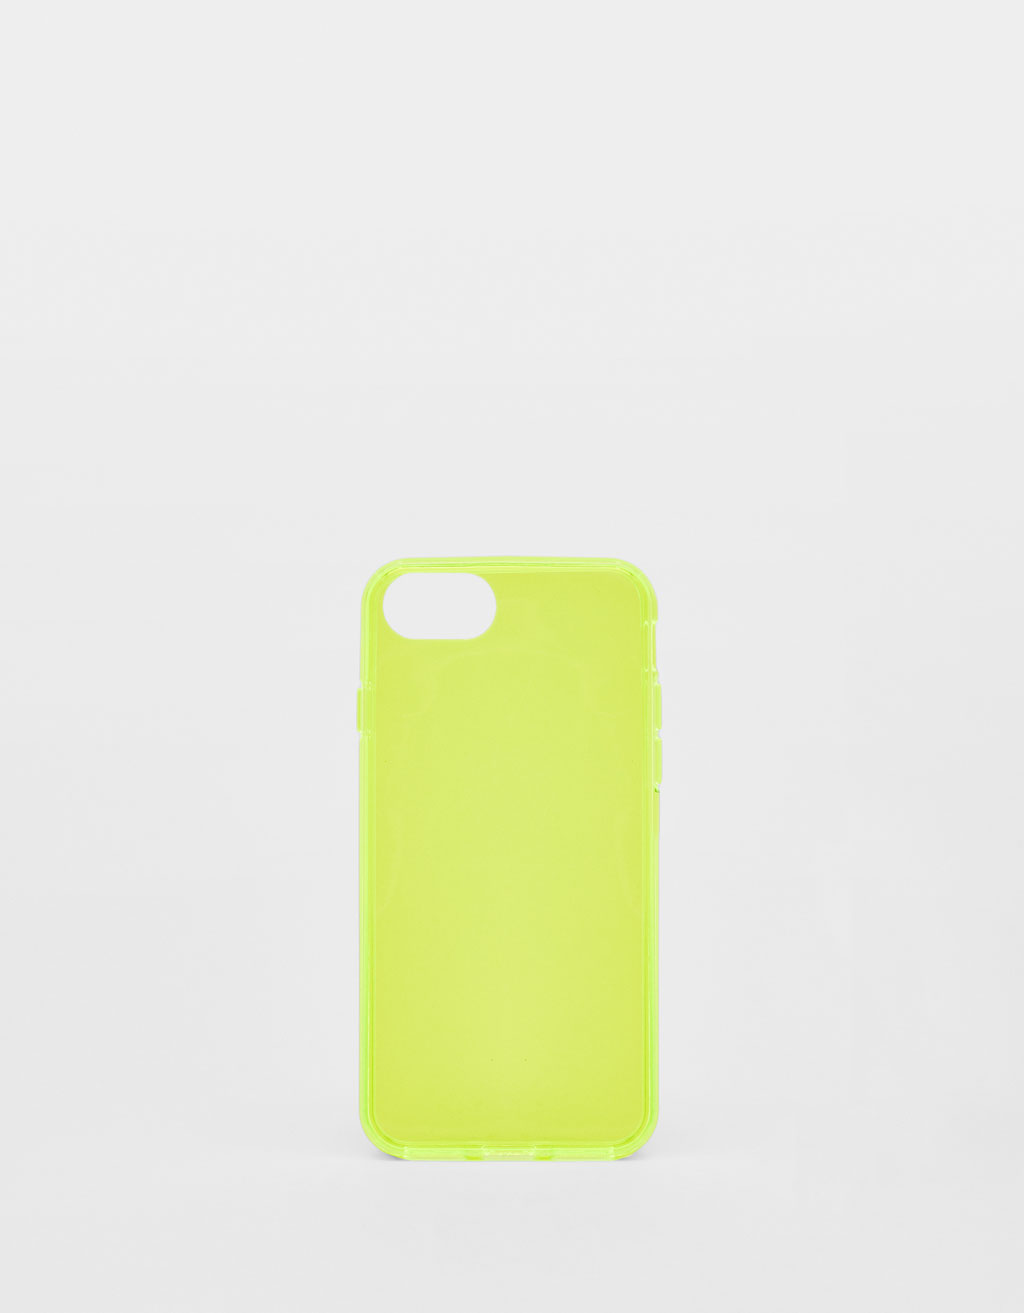 Carcasa transparente fluor iPhone 6 / 6S / 7/ 8